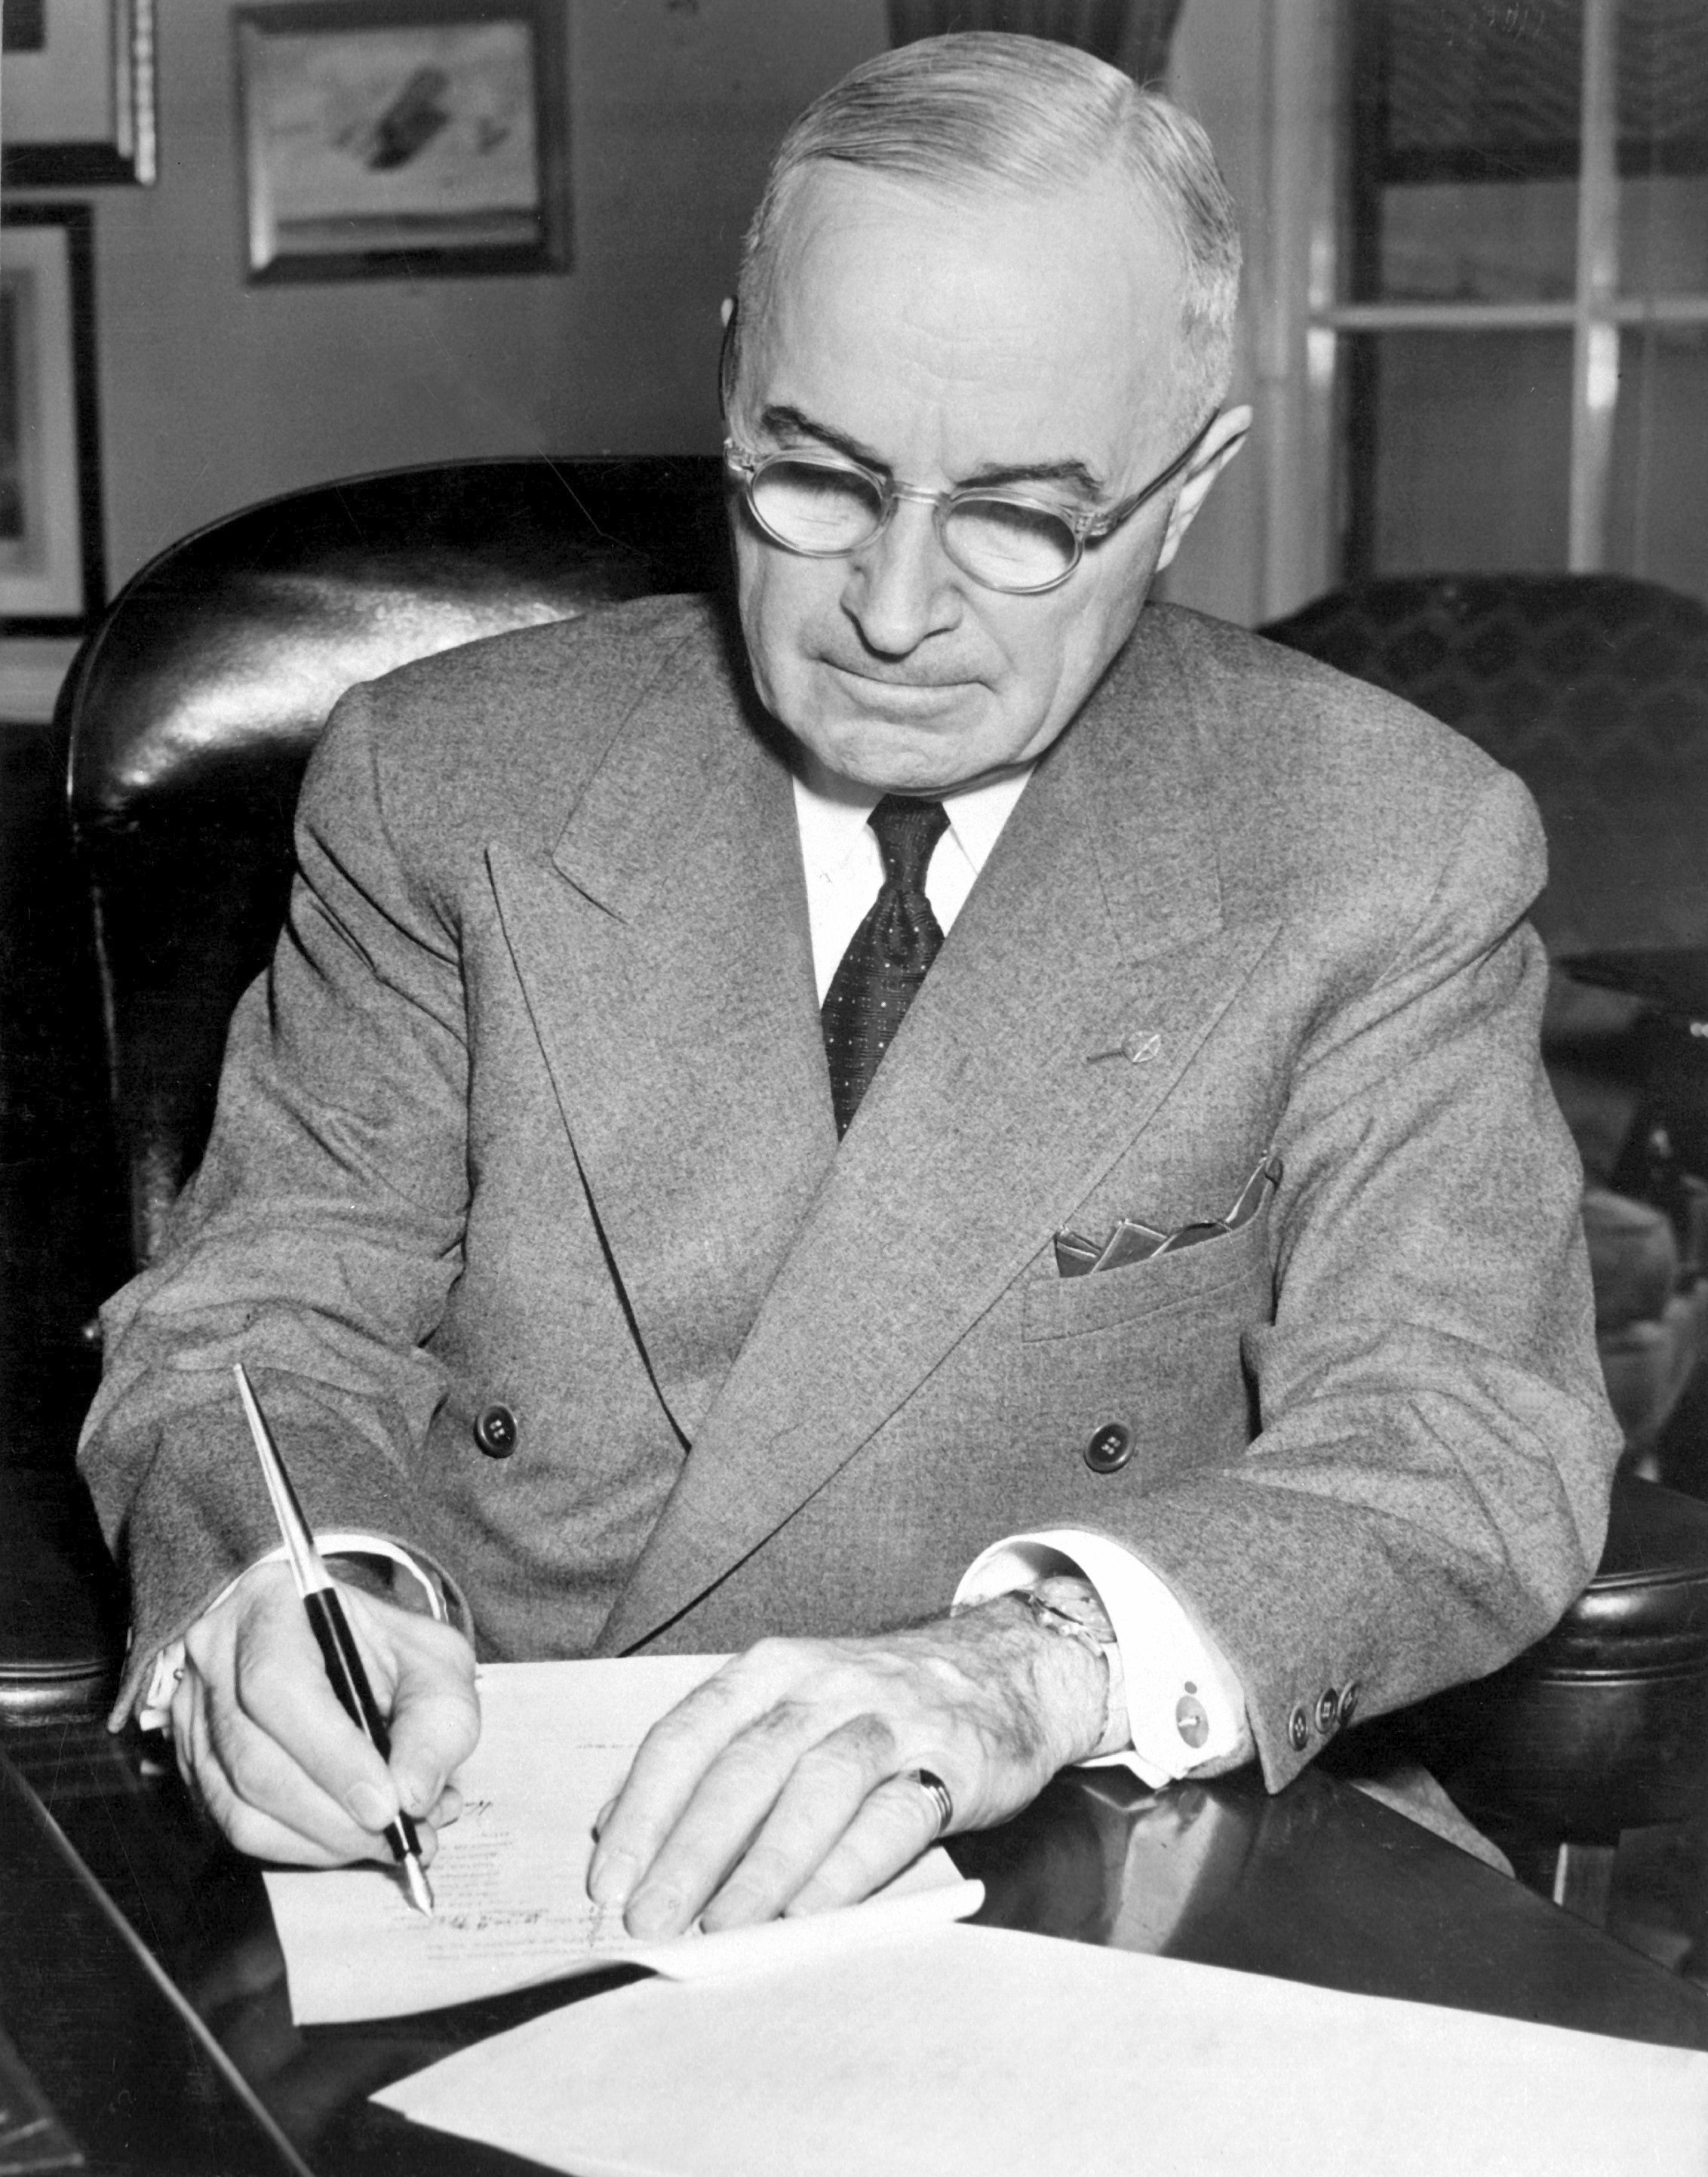 President Harry S. Truman is shown at his desk at the White House signing a proclamation declaring a national emergency and authorizing U.S. entry into the Korean War on December 16, 1950. Photo from the National Archives and Records Administration, cataloged under the National Archives Identifier (NAID) 541951.